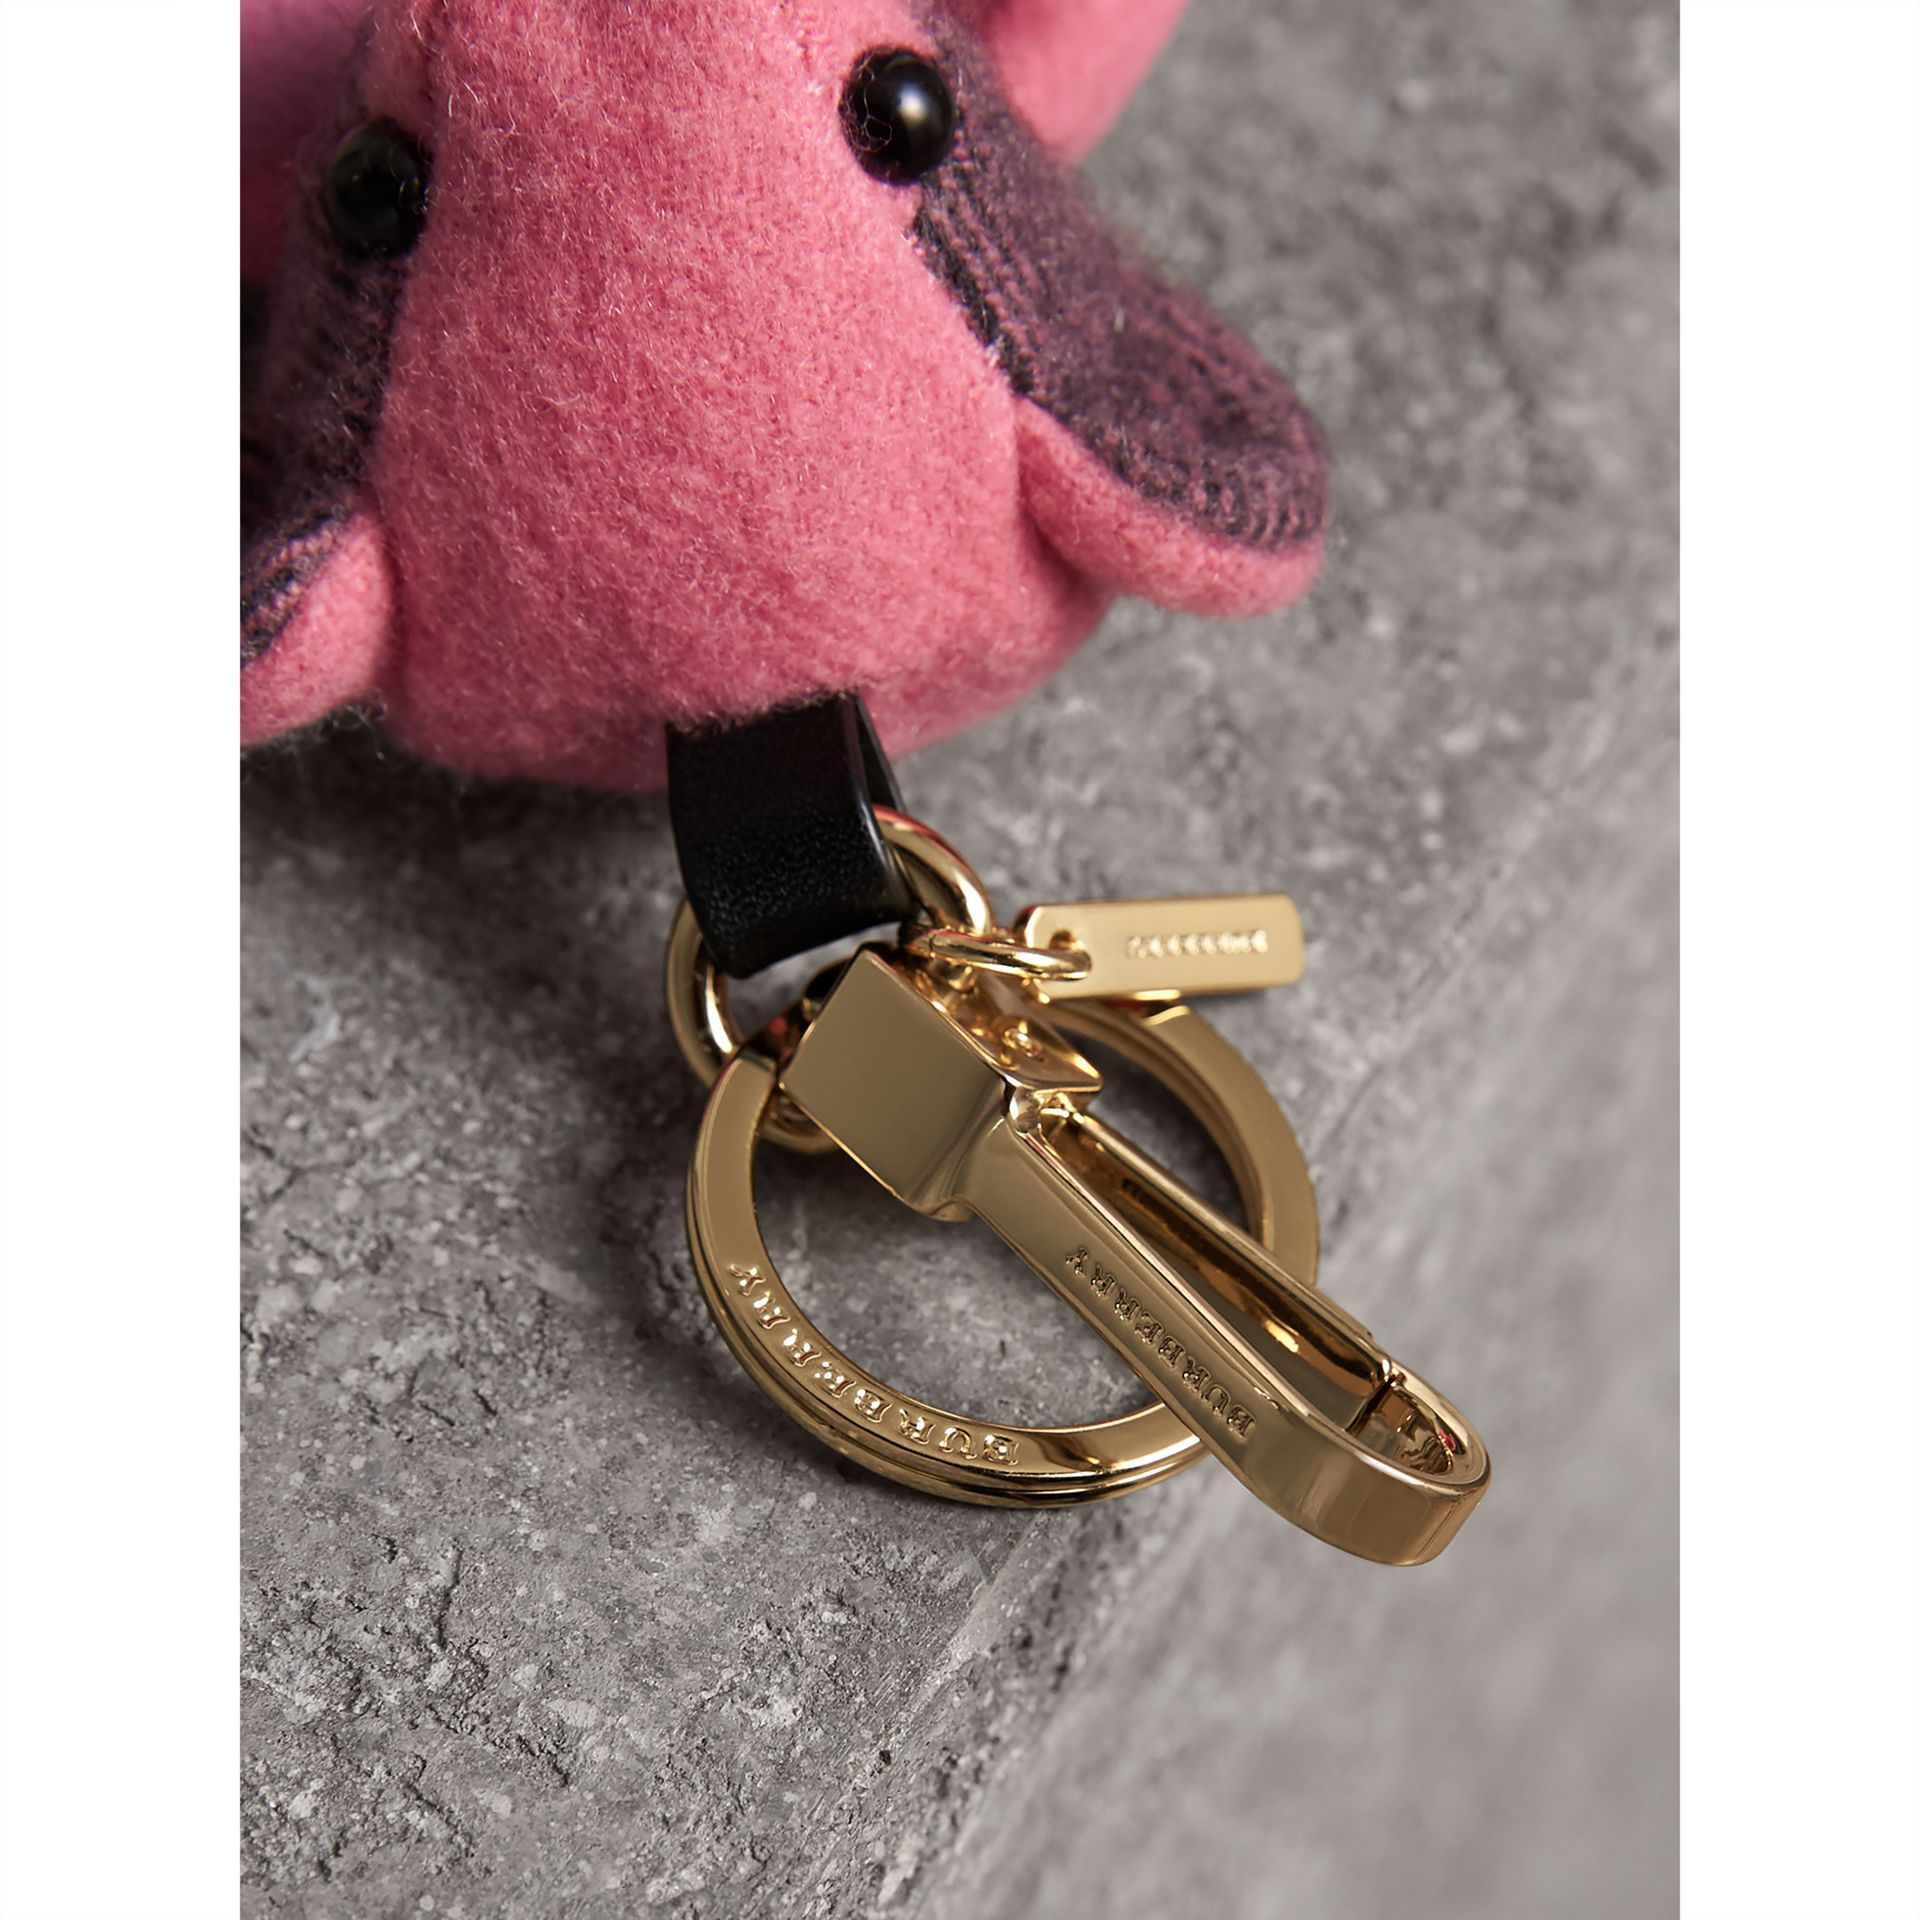 Thomas Bear Charm in Check Cashmere in Rose Pink - Women | Burberry Singapore - gallery image 2